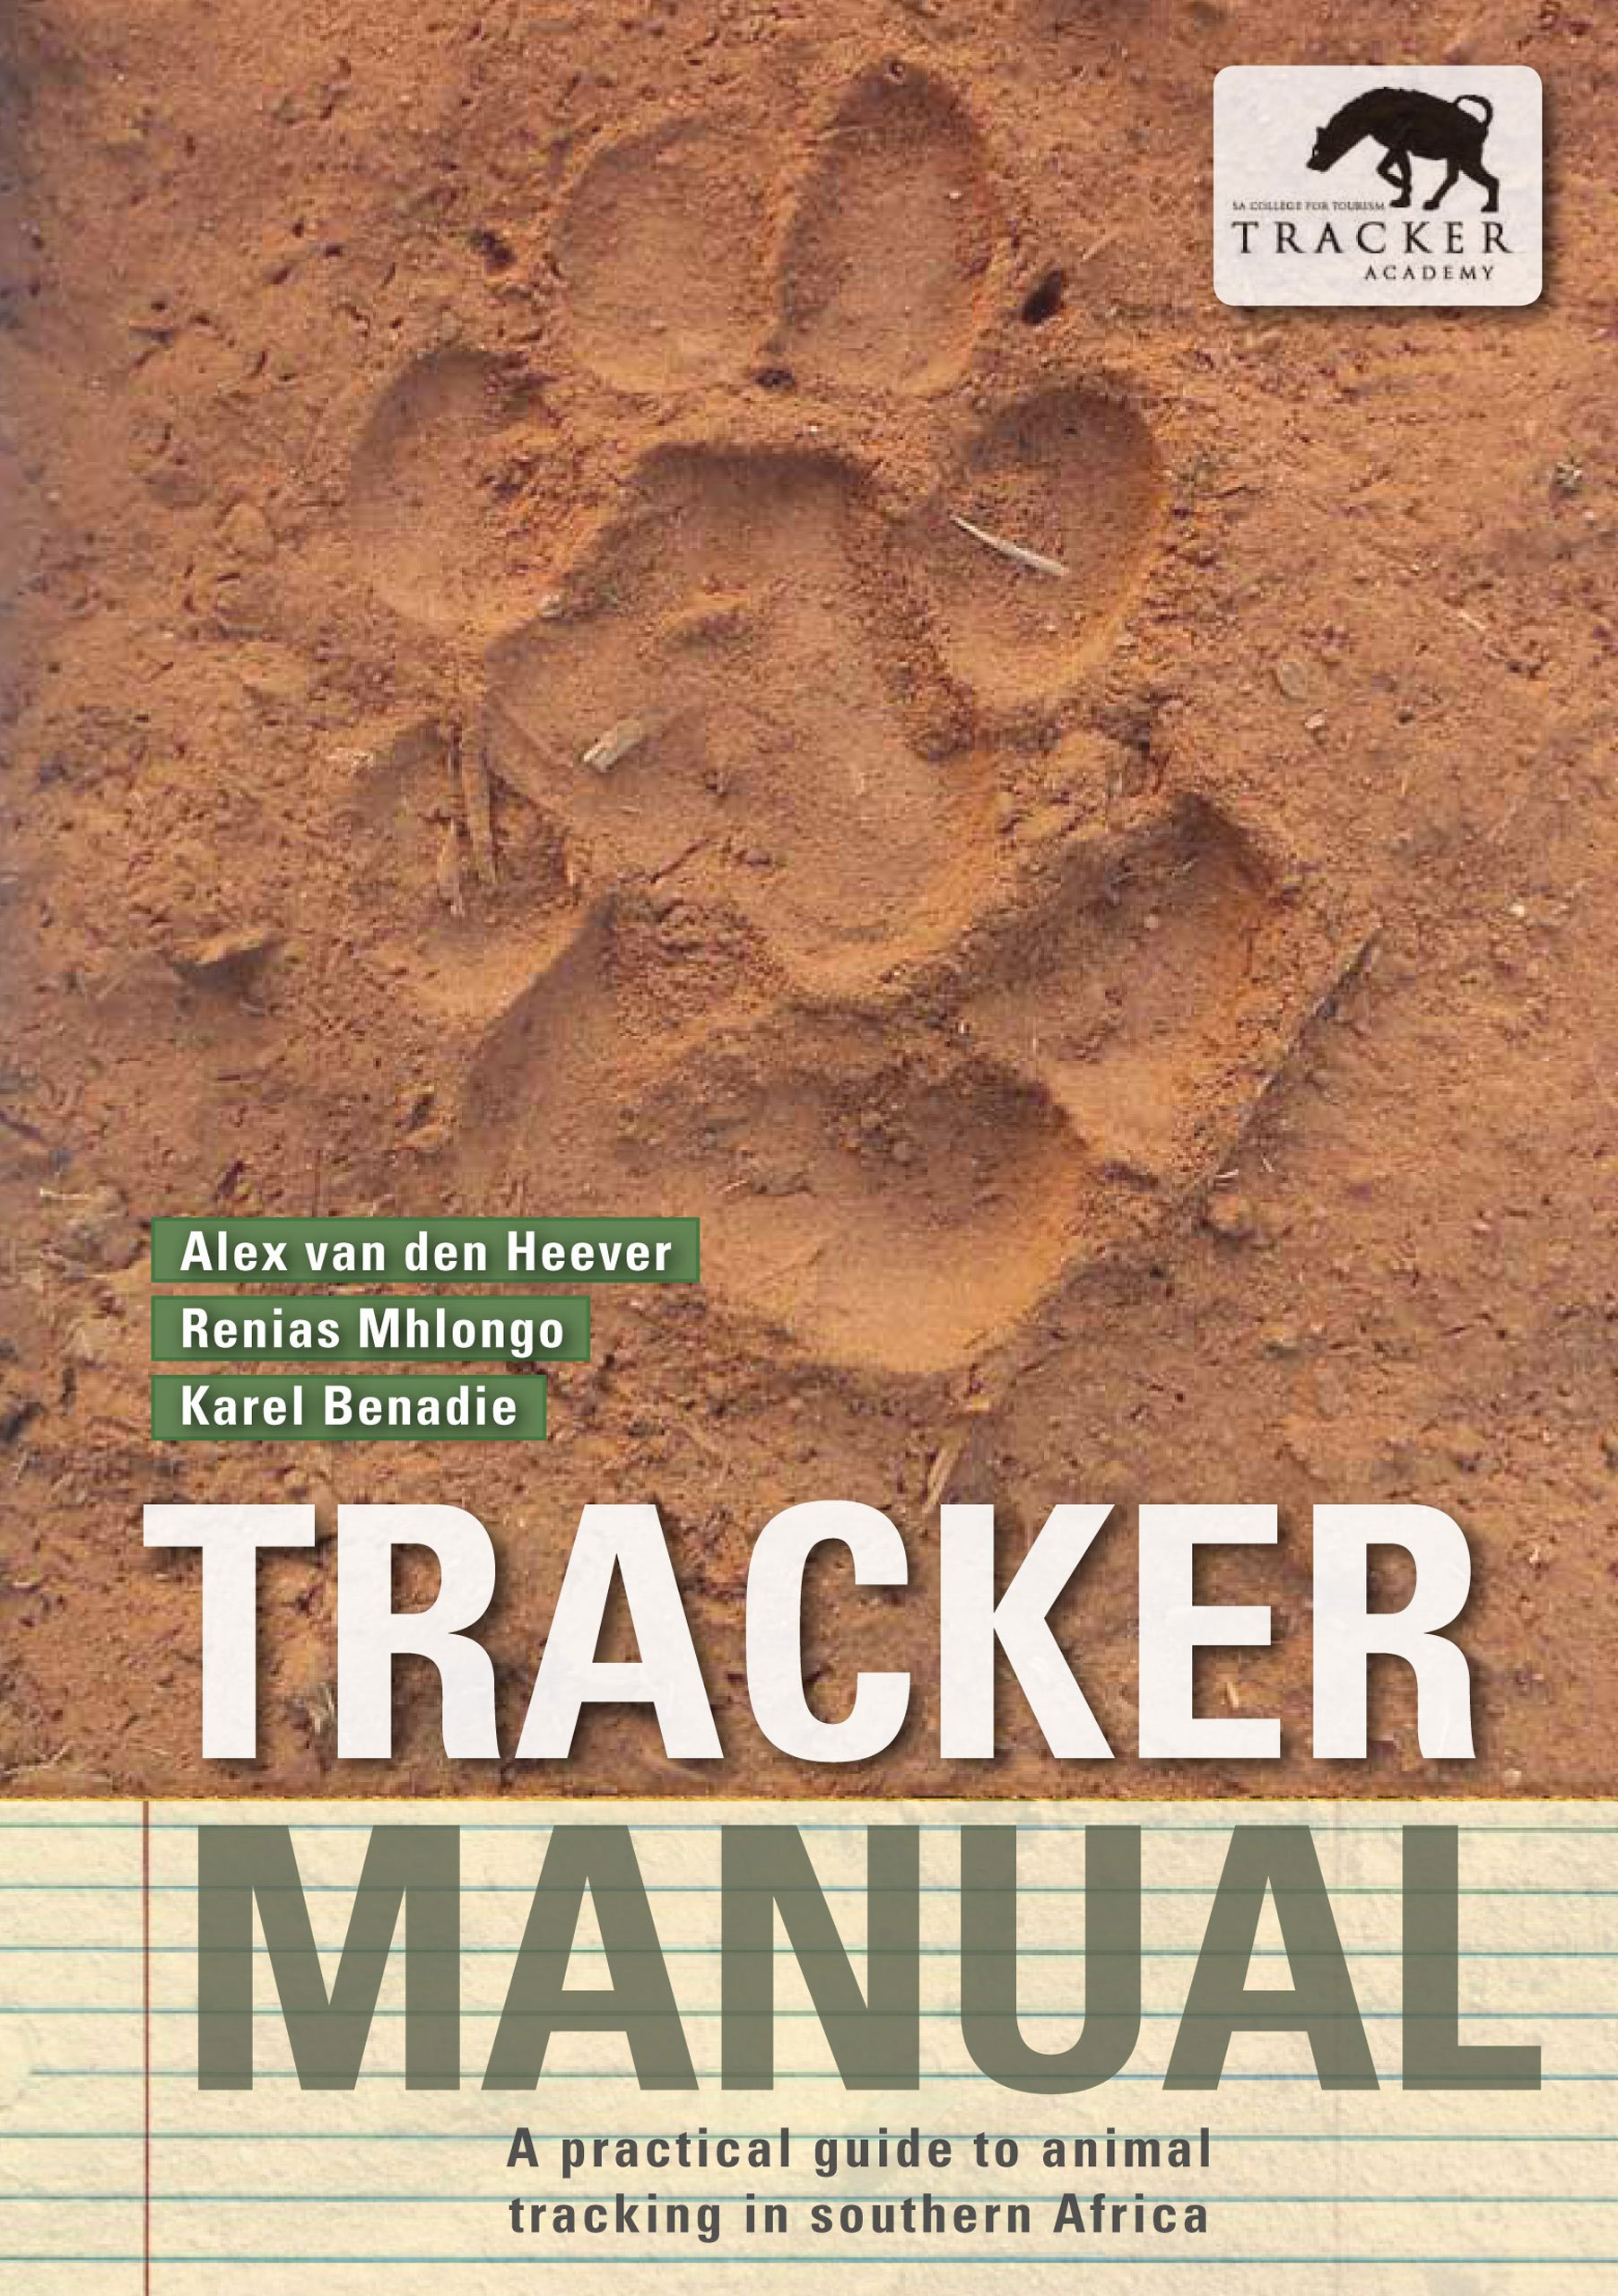 Image OfTracker Manual: A Practical Guide To Animal Tracking In Southern Africa